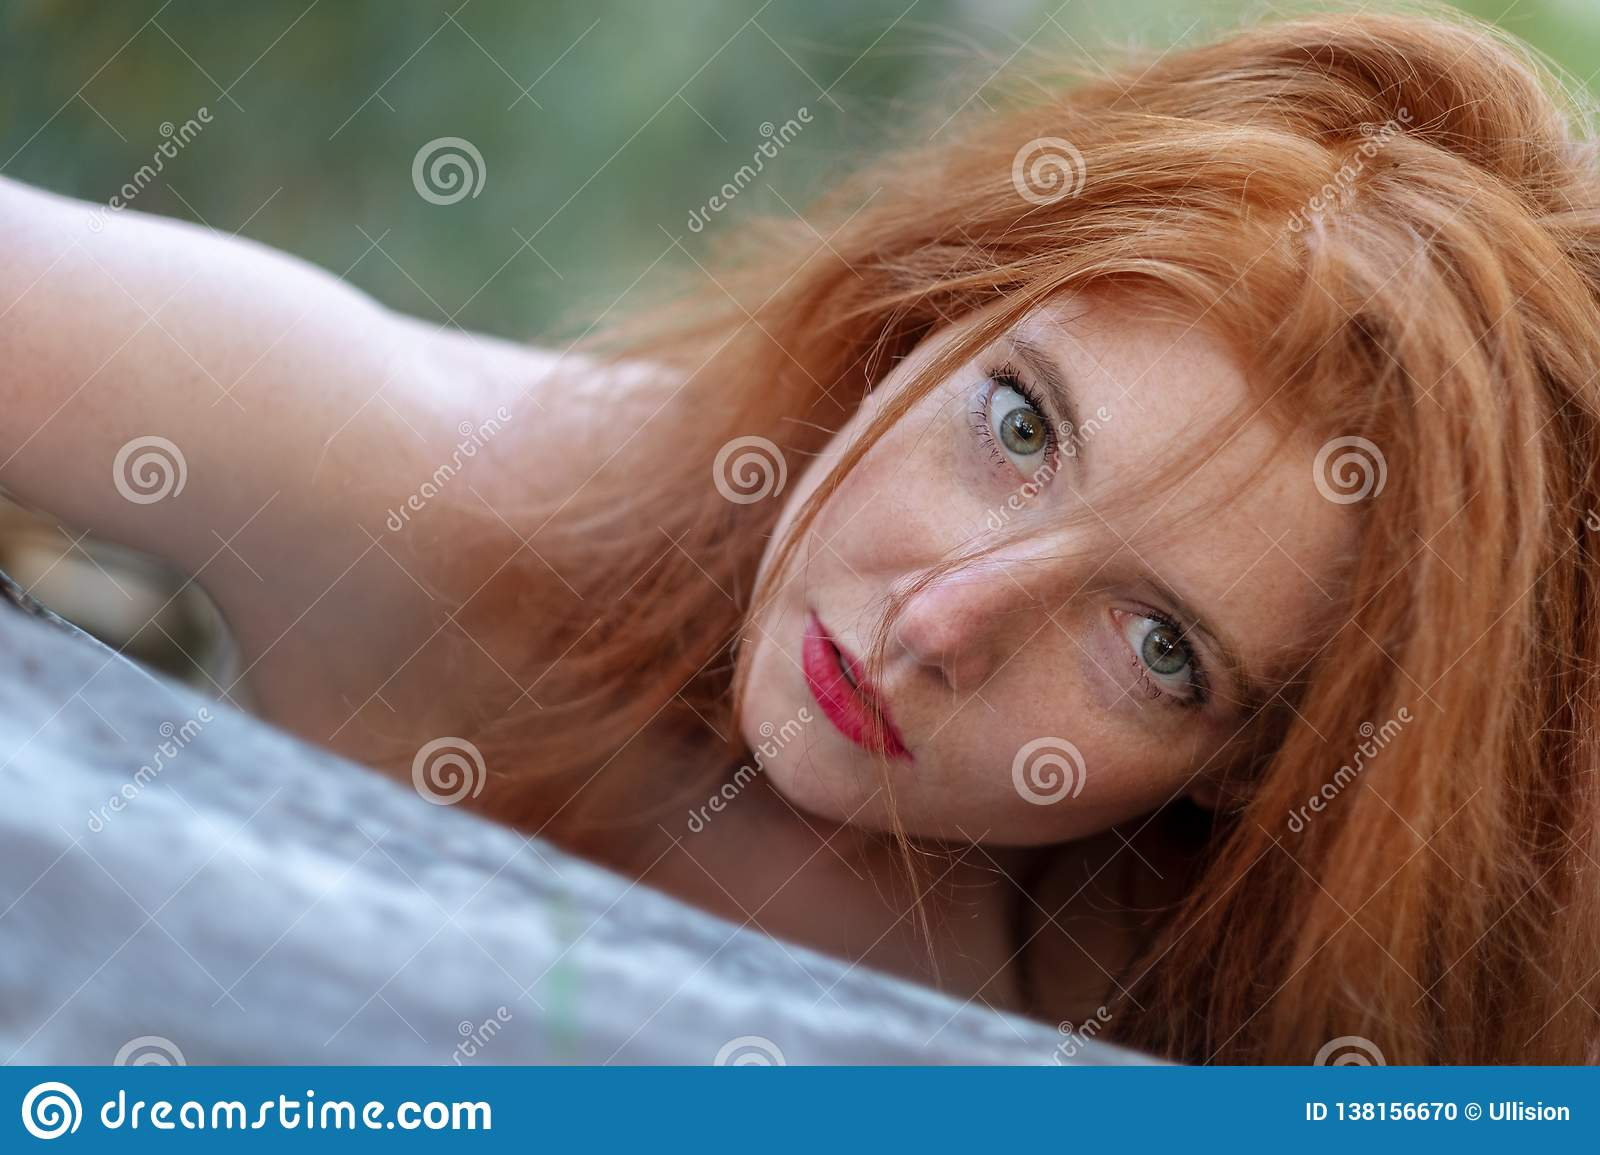 Portrait of a beautiful young red-haired woman with green eyes is sensually leaning against a fallen gray tree trunk